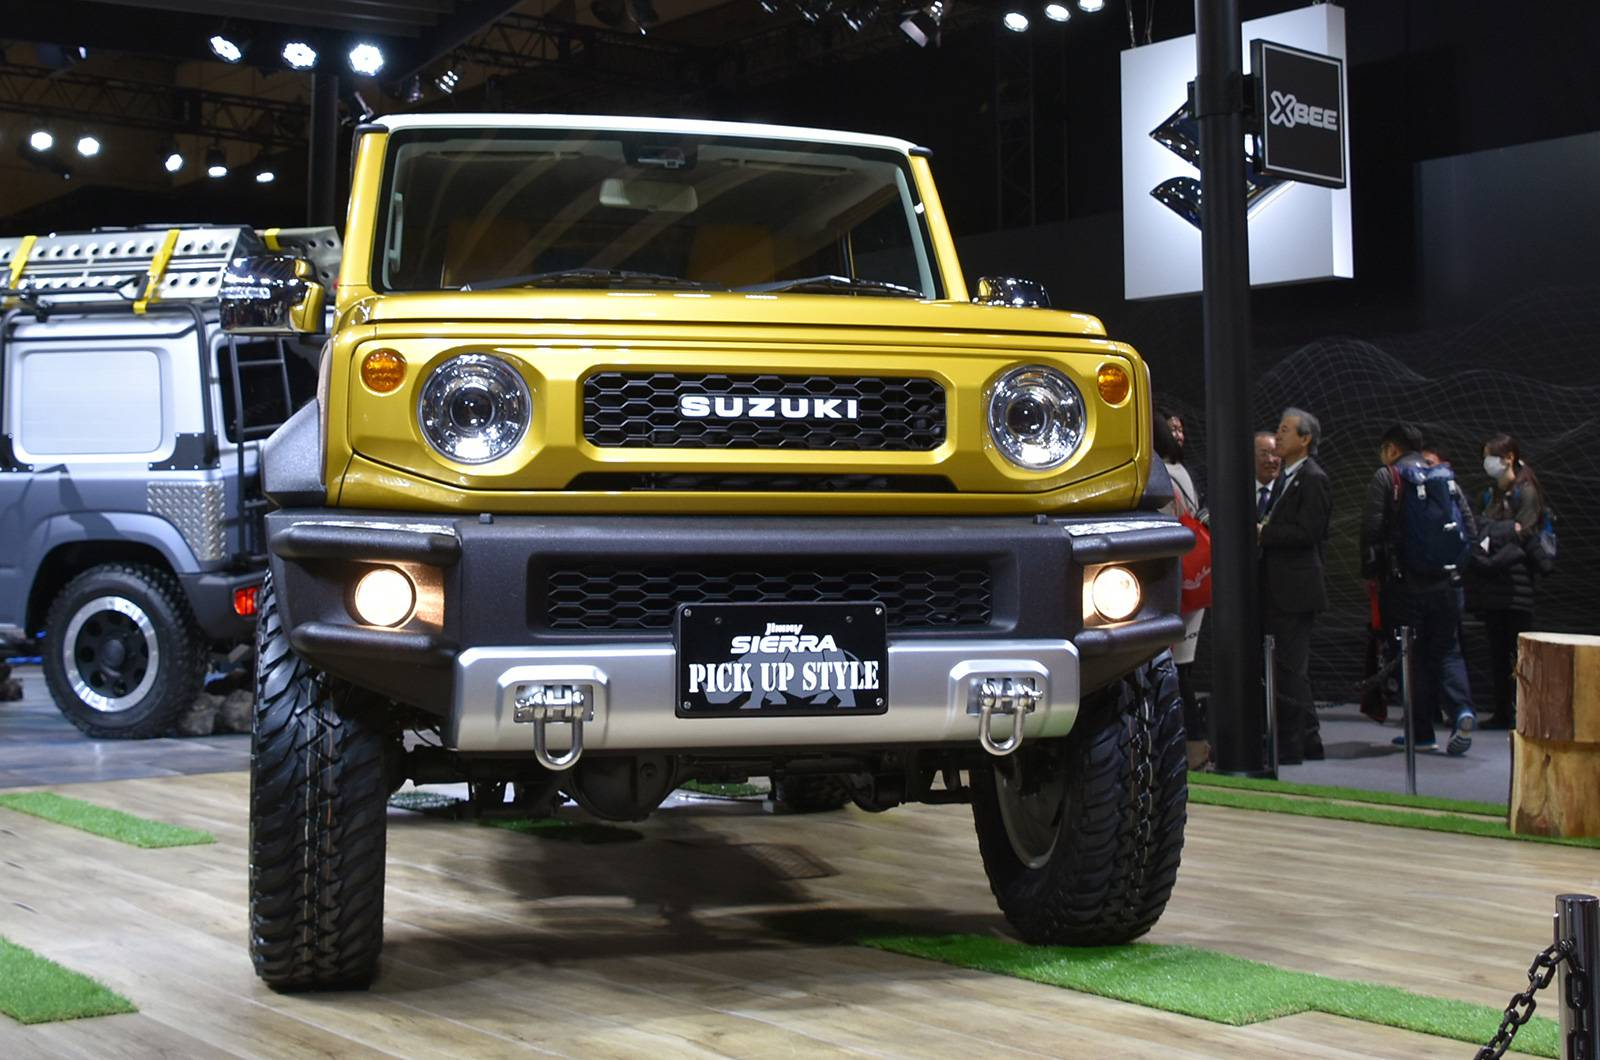 Suzuki Jimny Sierra Pickup Style concept and Jimny Survive concept (1)